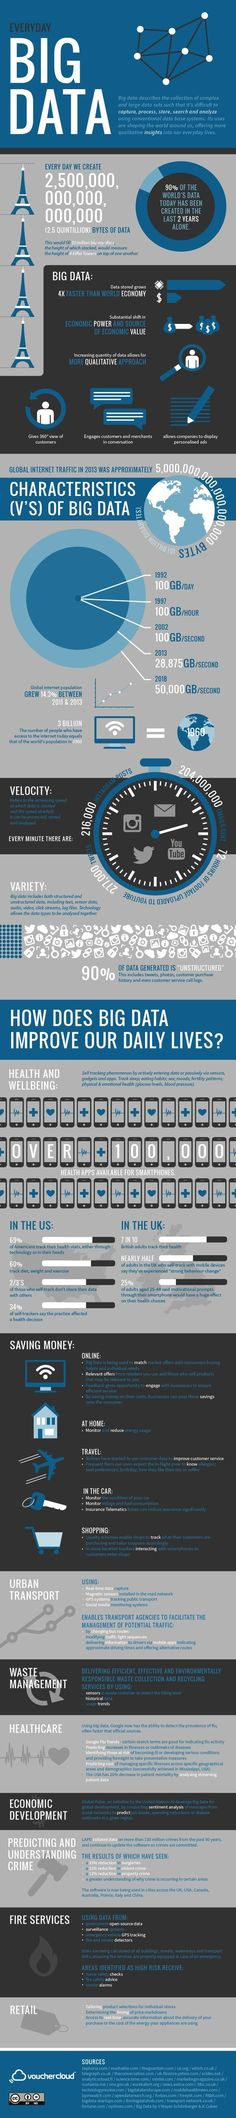 Big Harvest — How Big Data Improves Our Daily Lives #BigData #Infographic #GE #Manufacturing